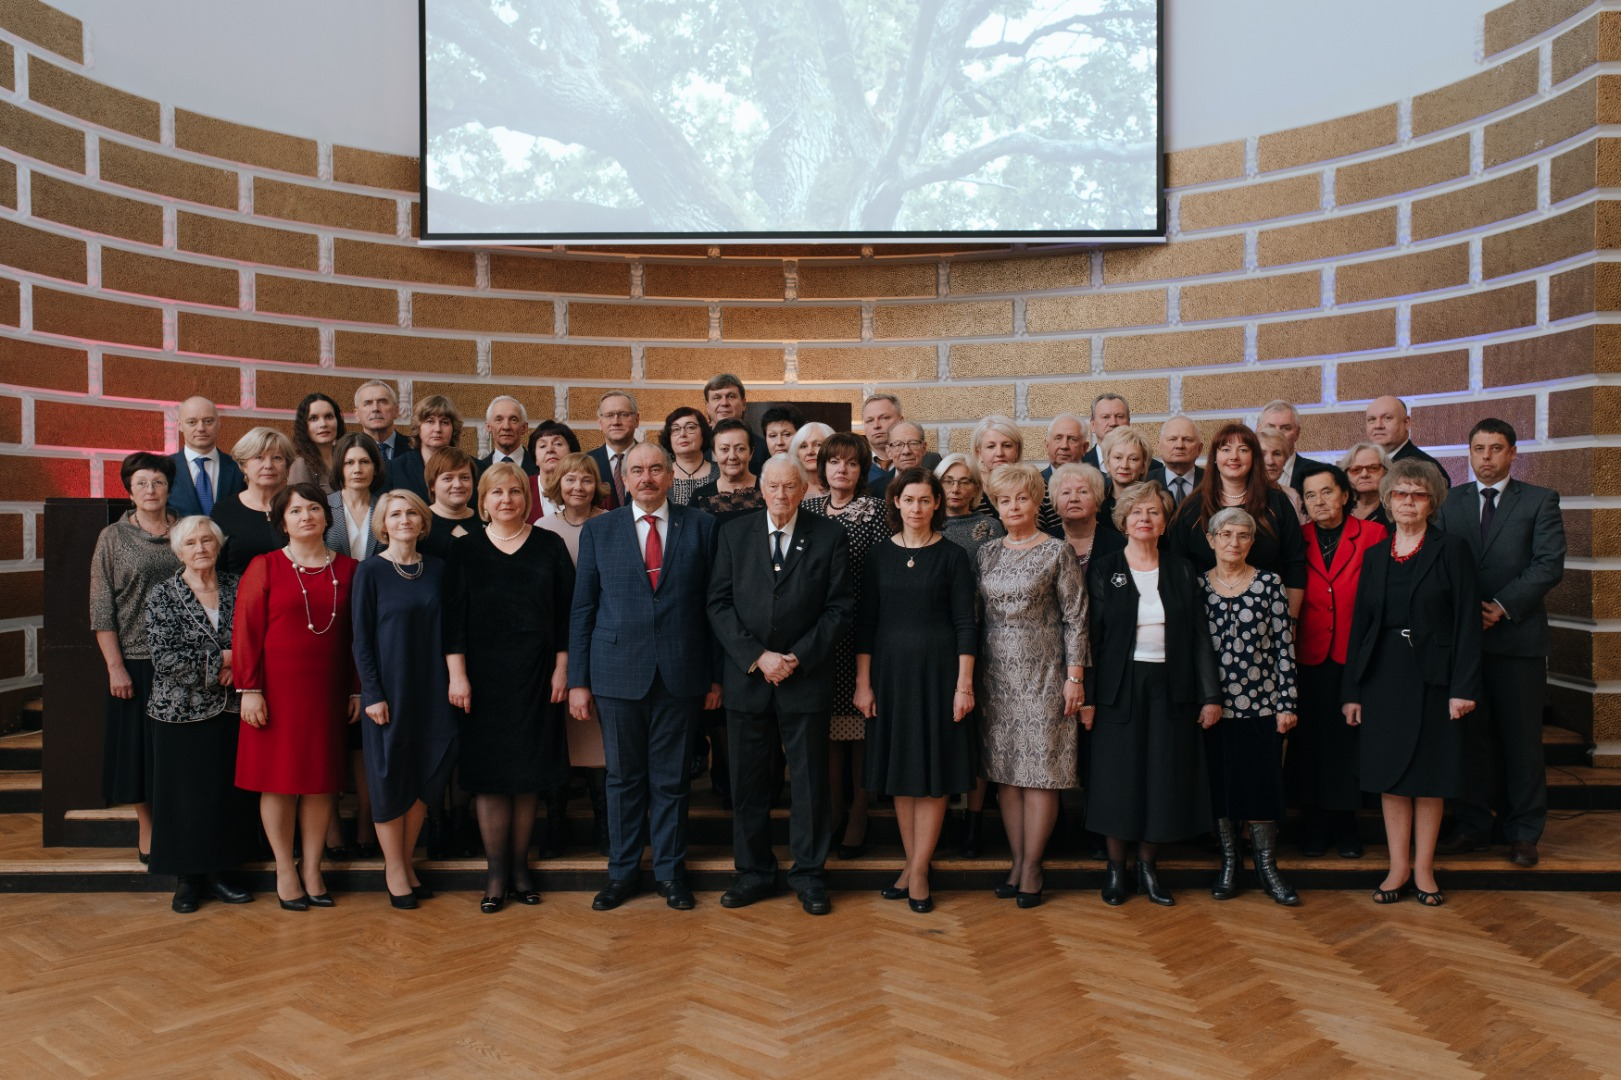 19.12.2018. The centenary of the highest court of Latvia – the Senate – was solemnly celebrated having a look back at the work done. Photo: Former and current judges of the Supreme Court.